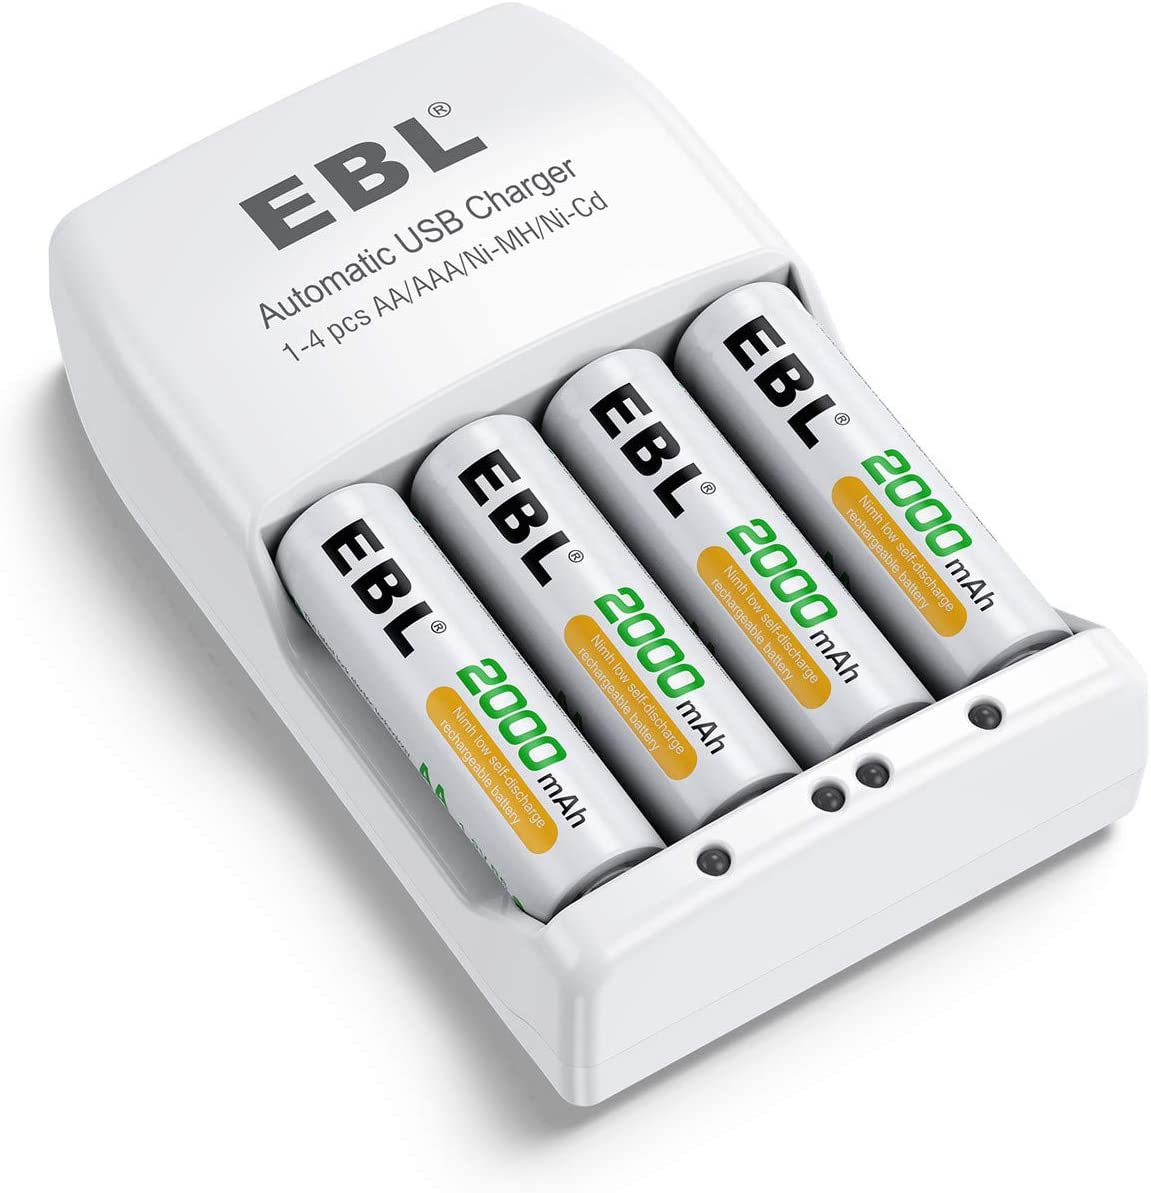 and Rechargeable Battery Charger for Ni-MH//Ni-CD AA AAA Rechargeable Batteries 4 Pack EBL Rechargeable AA Batteries 2000mAh